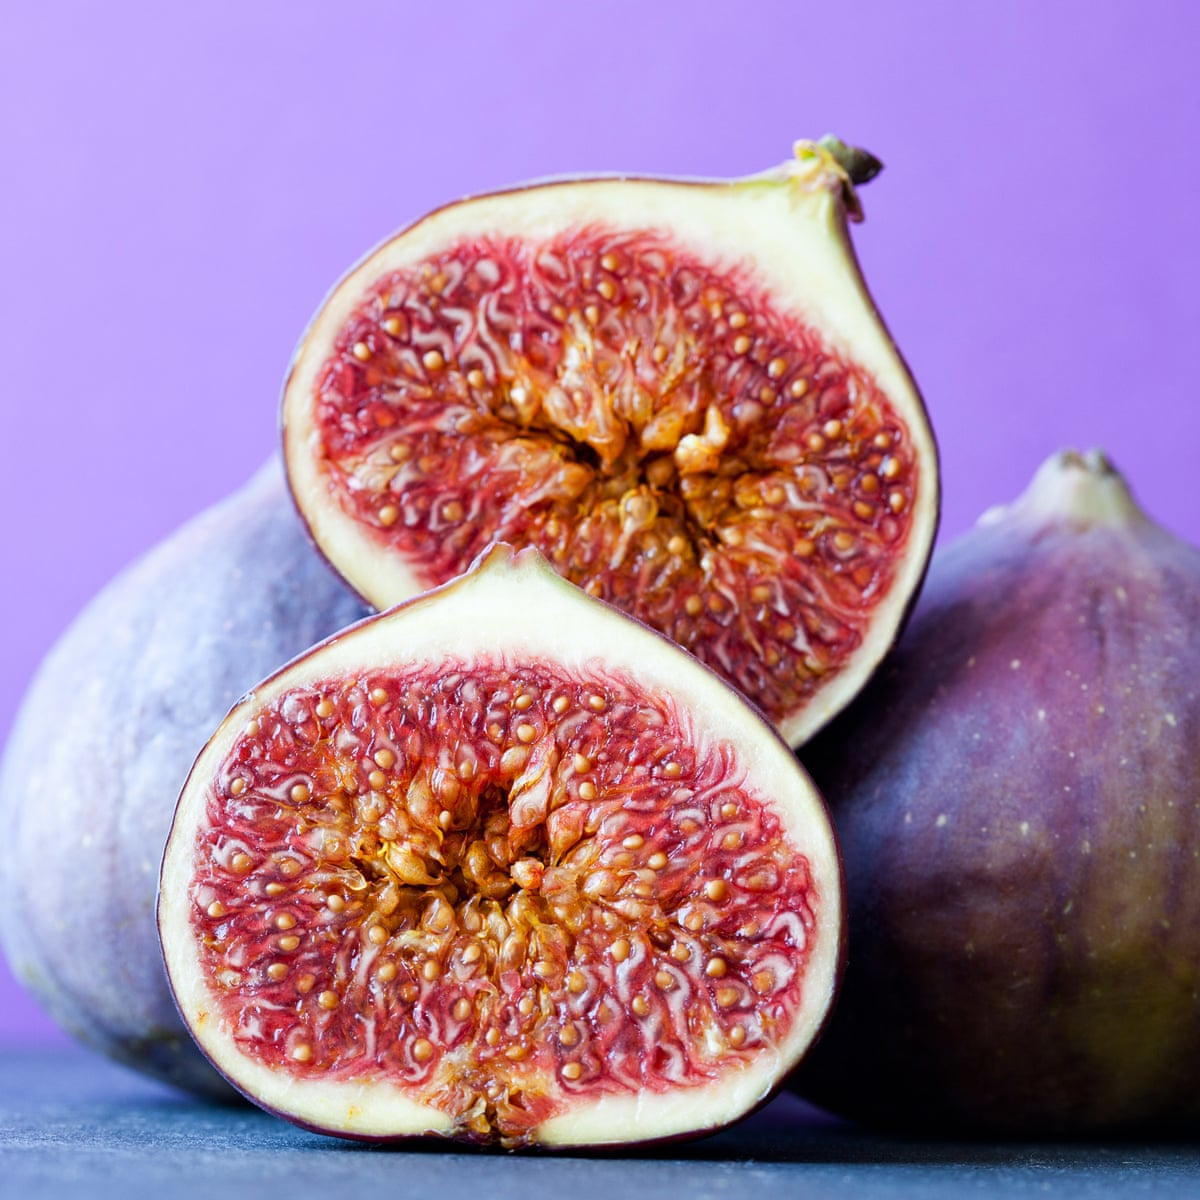 Meaty, jammy and very Instagrammable: why figs are having a moment | Food |  The Guardian